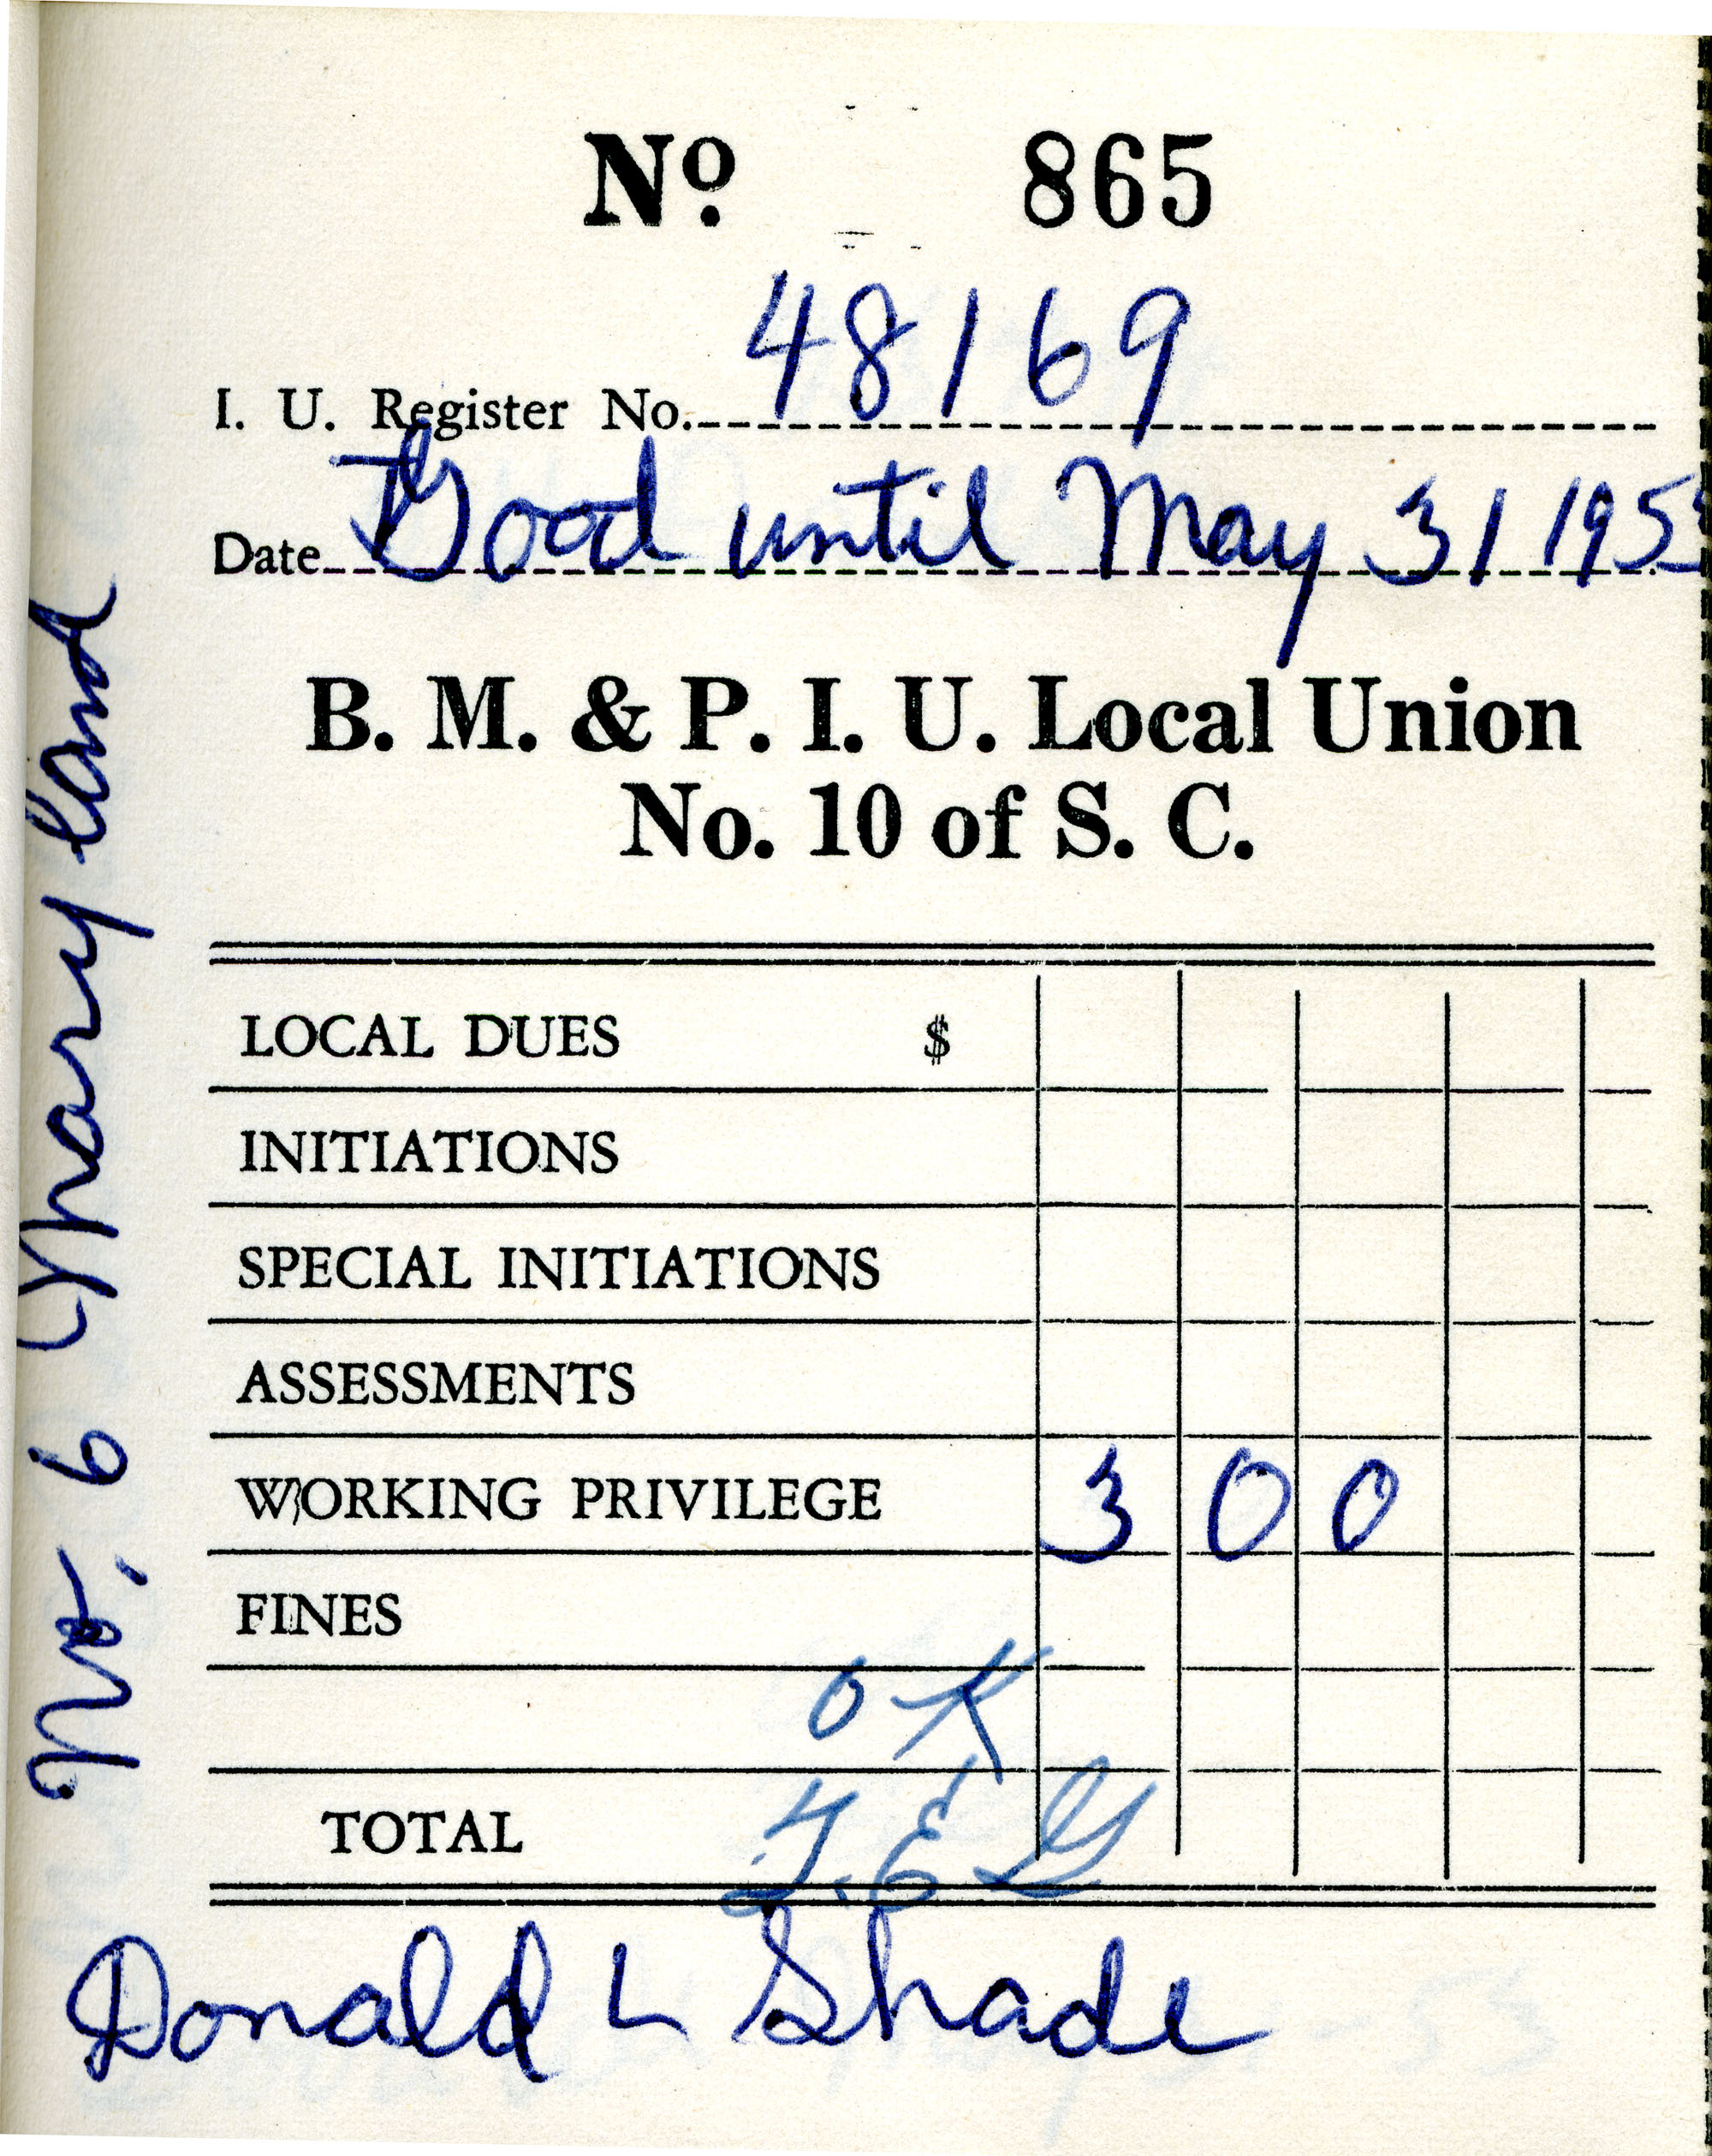 Receipt Book 3, Page 10